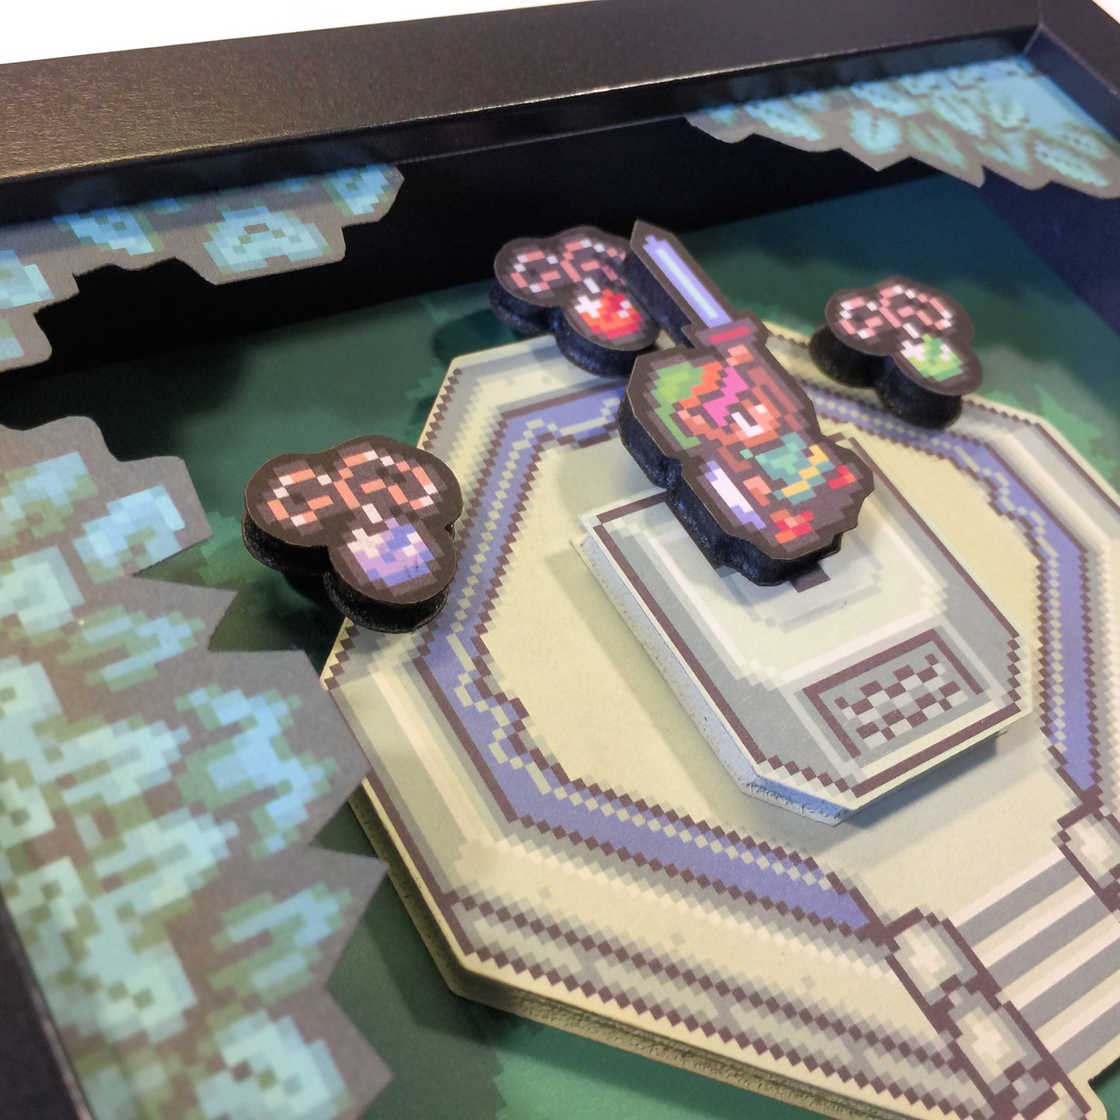 GlitchArtwork - Handmade 3D boxes in tribute to cult video games